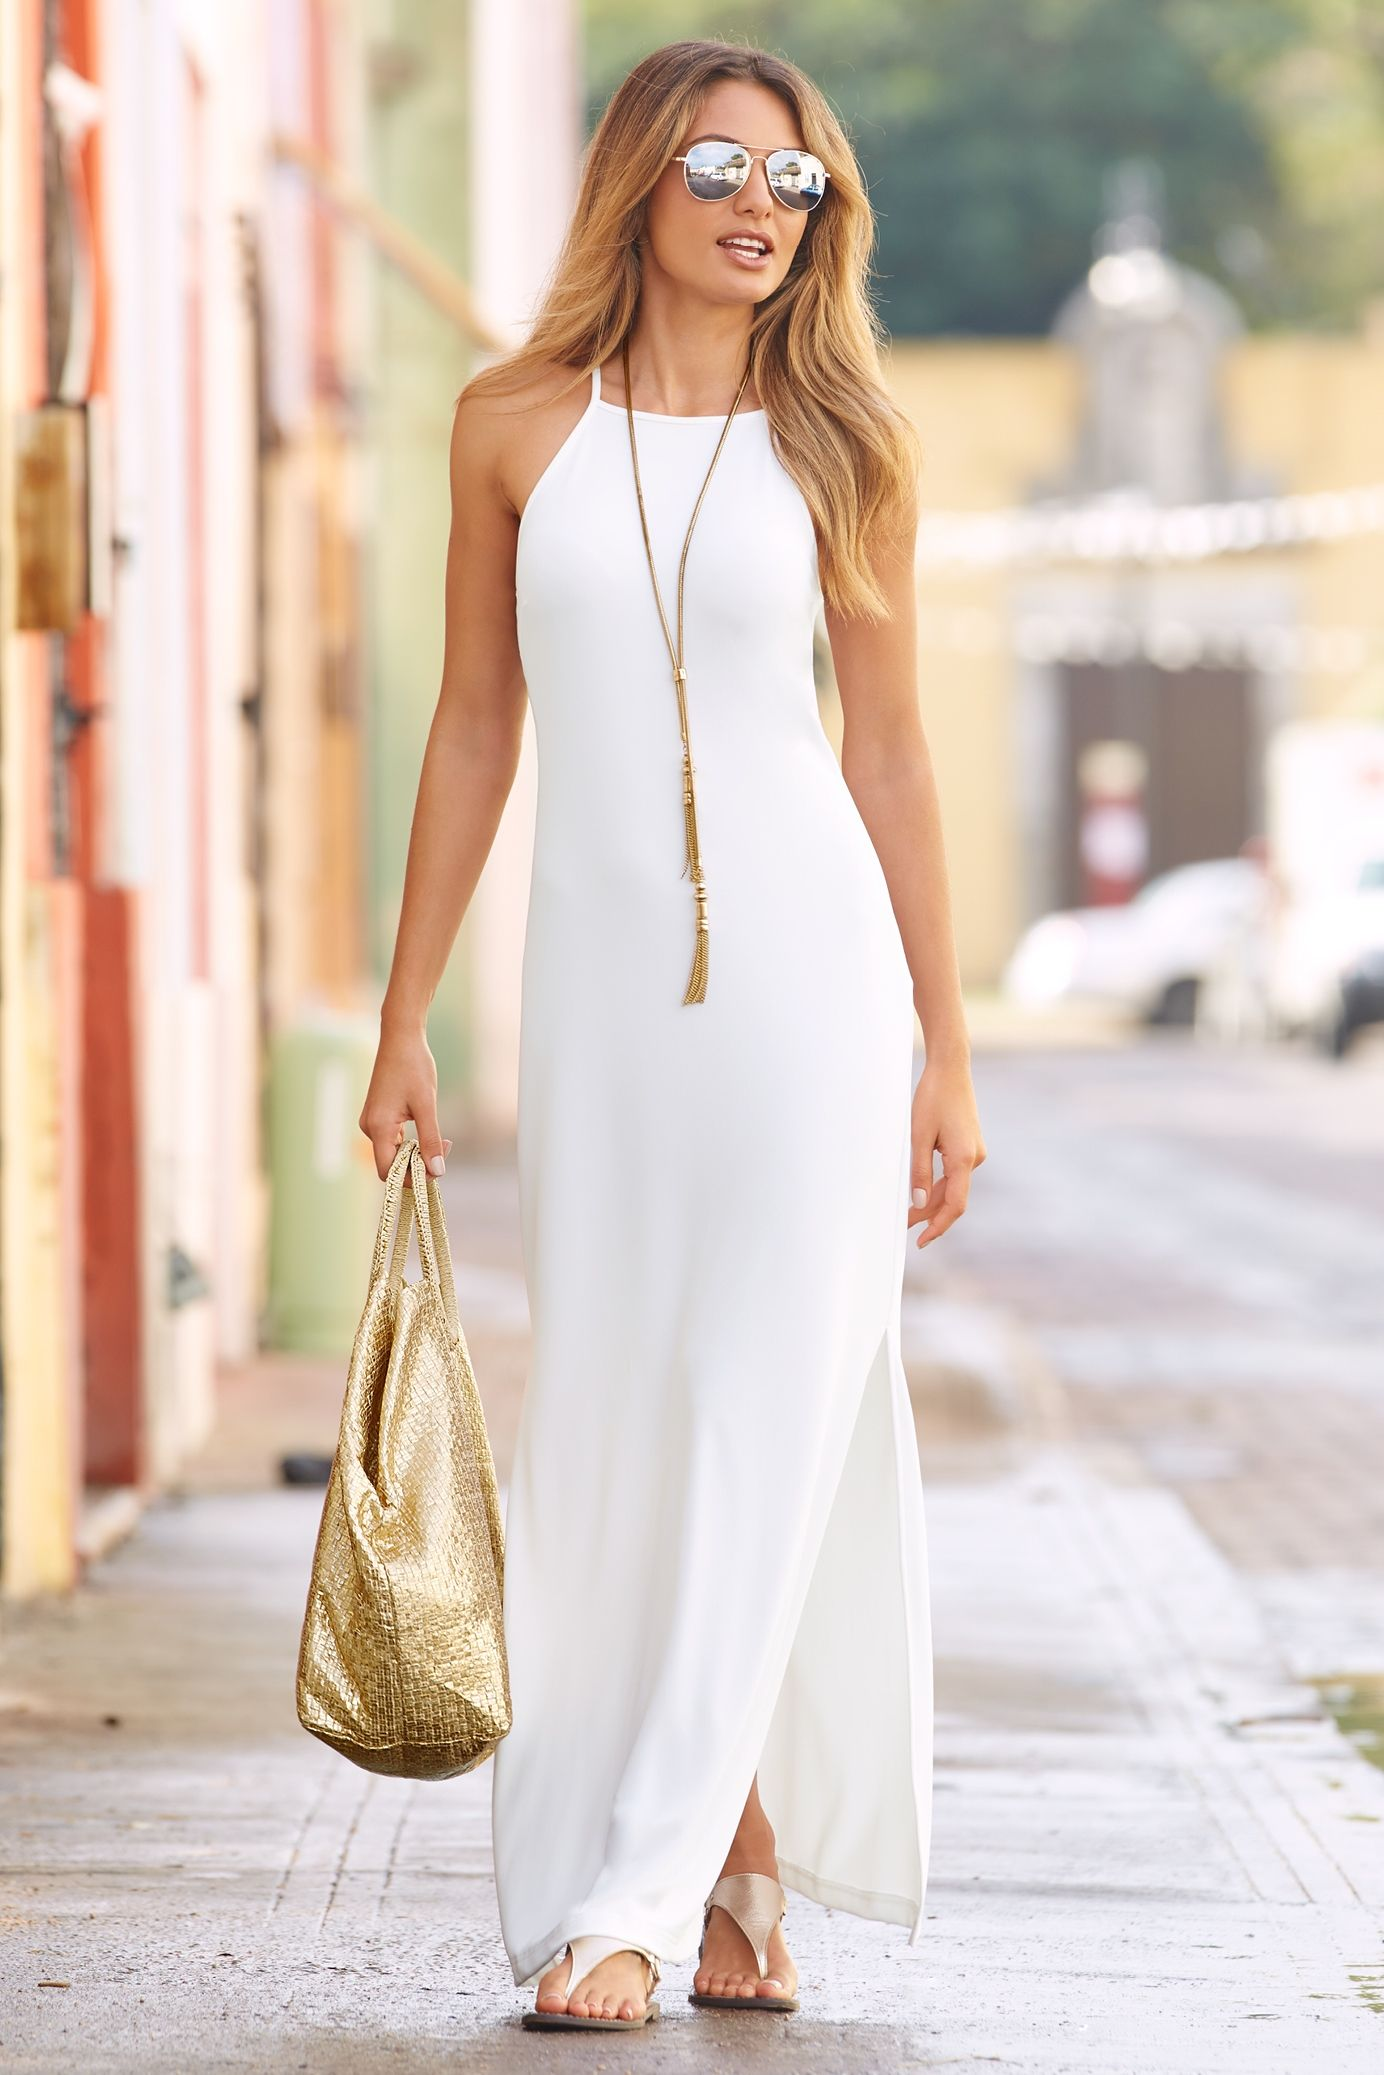 ef70df4eb7e0 Travel High-neck Maxi Dress